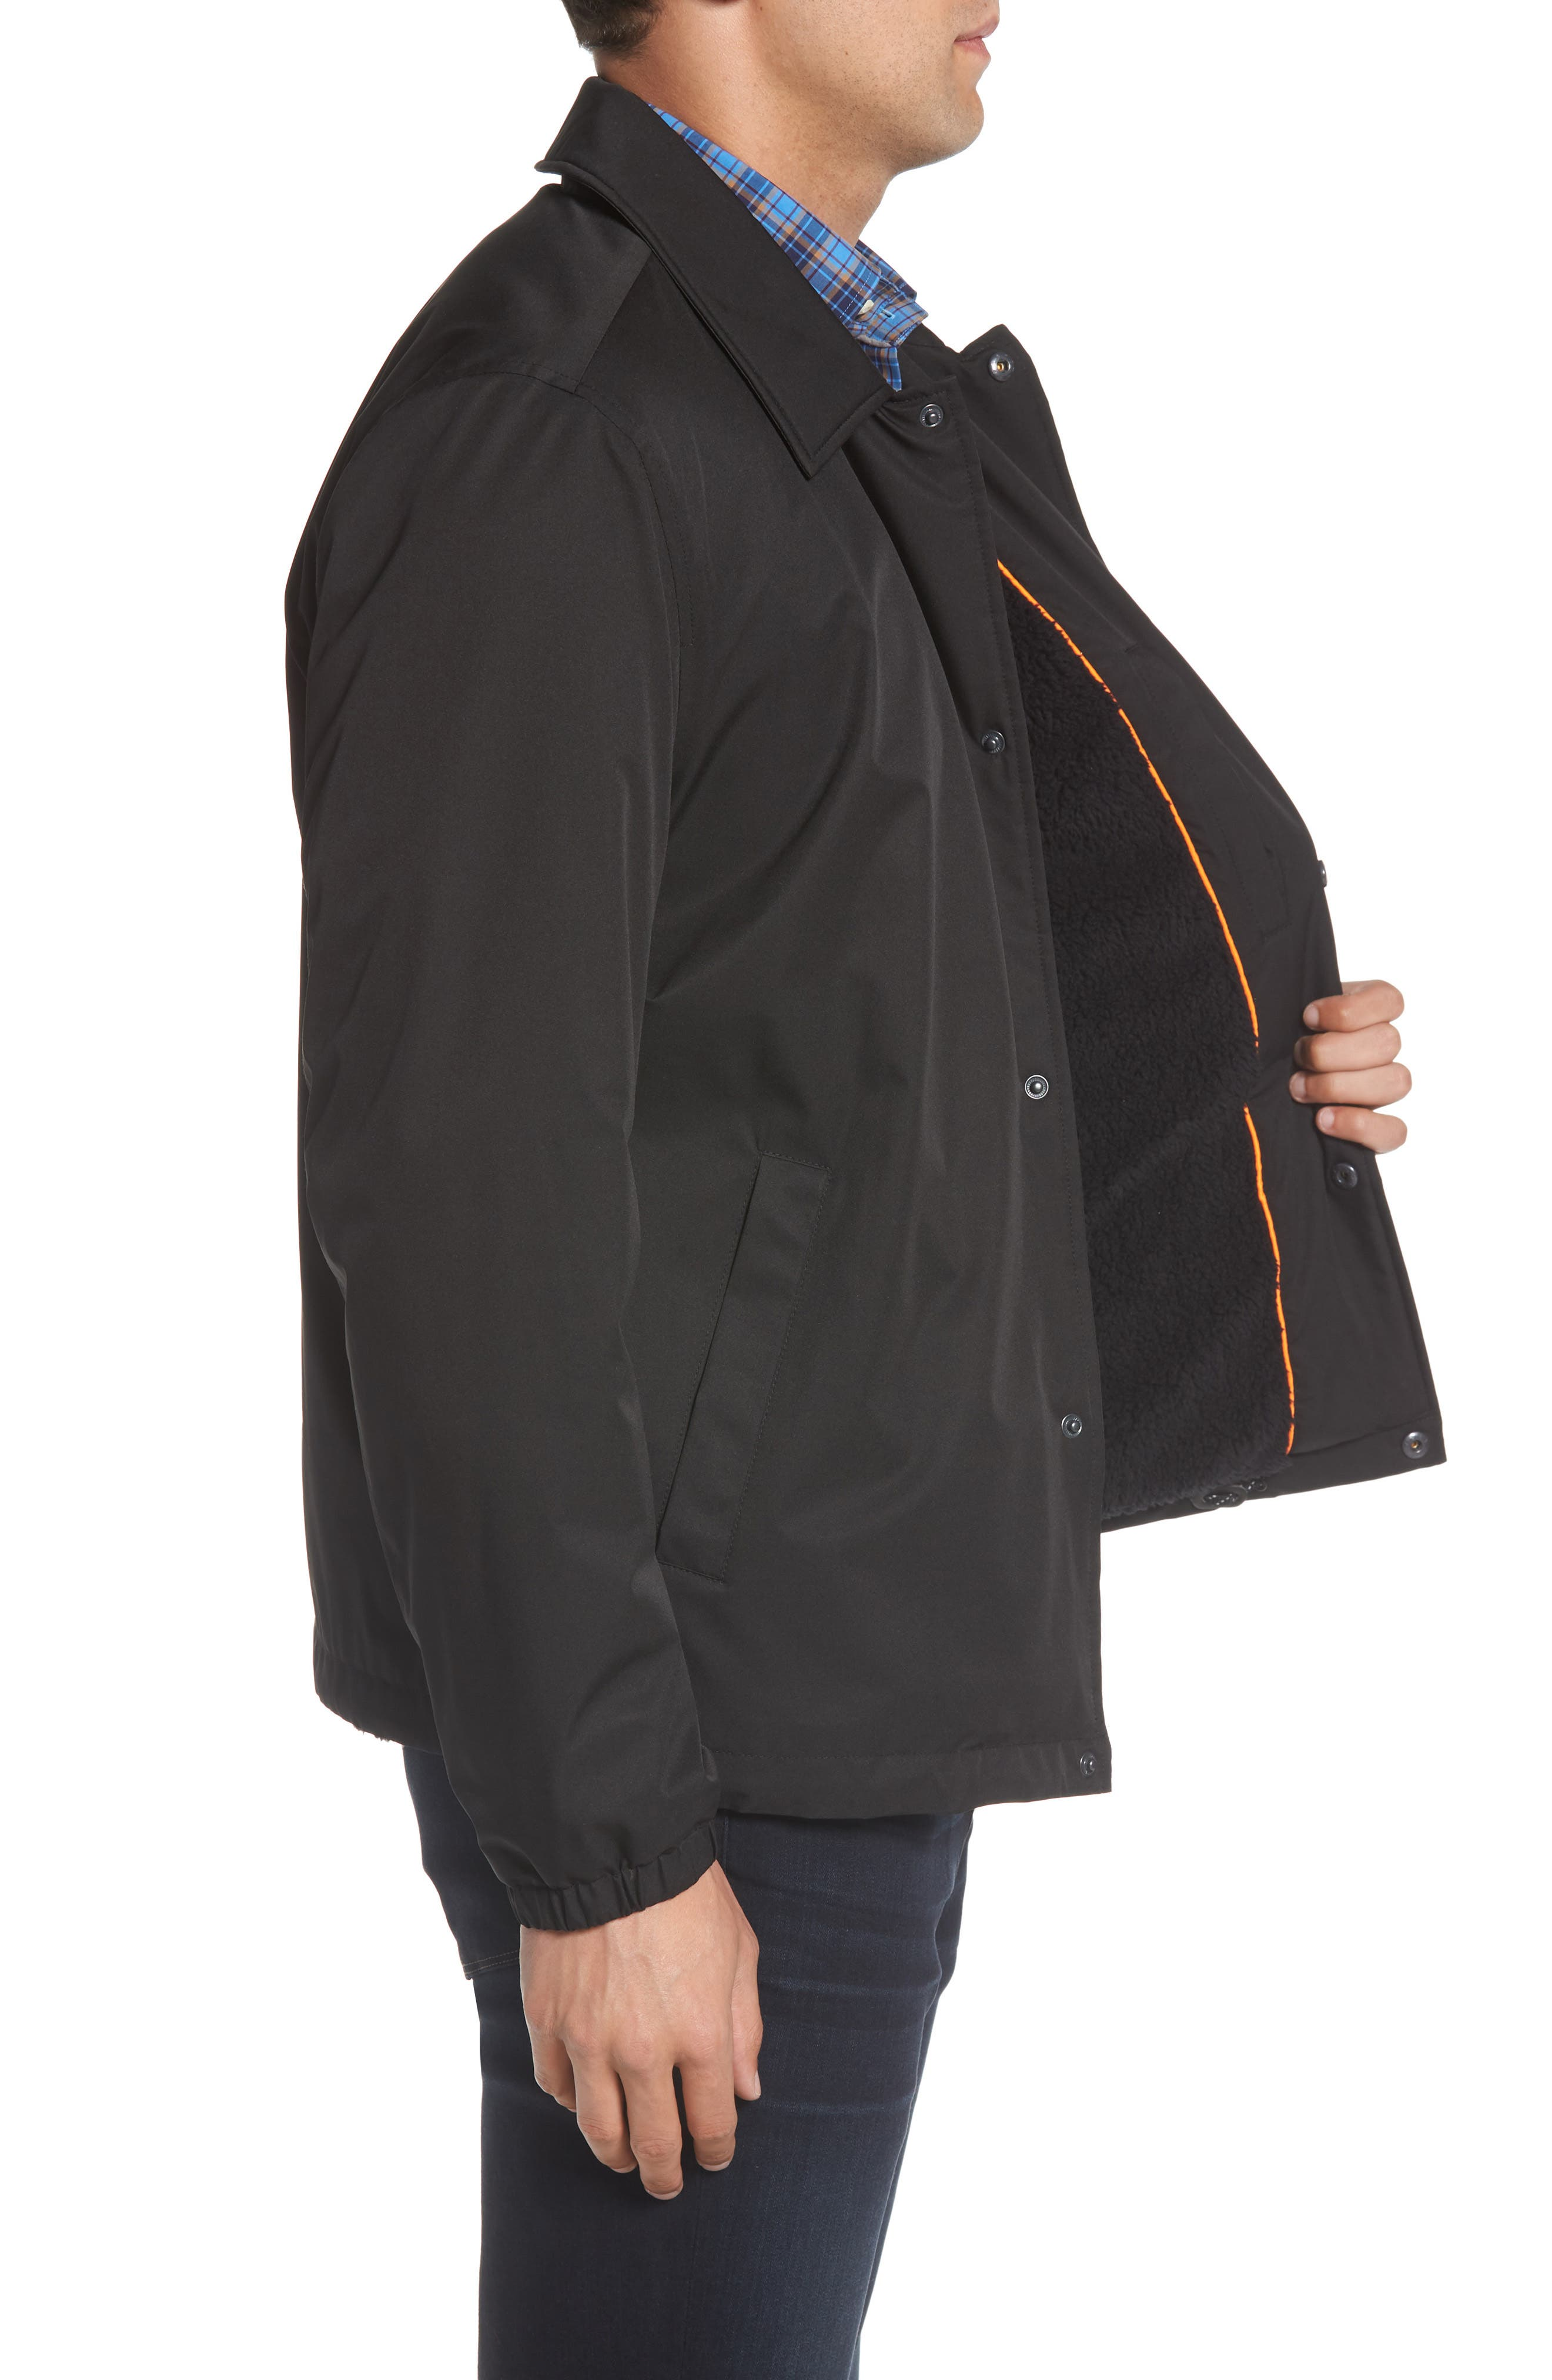 COLE HAAN SIGNATURE,                             Faux Shearling Lined Jacket,                             Alternate thumbnail 3, color,                             001